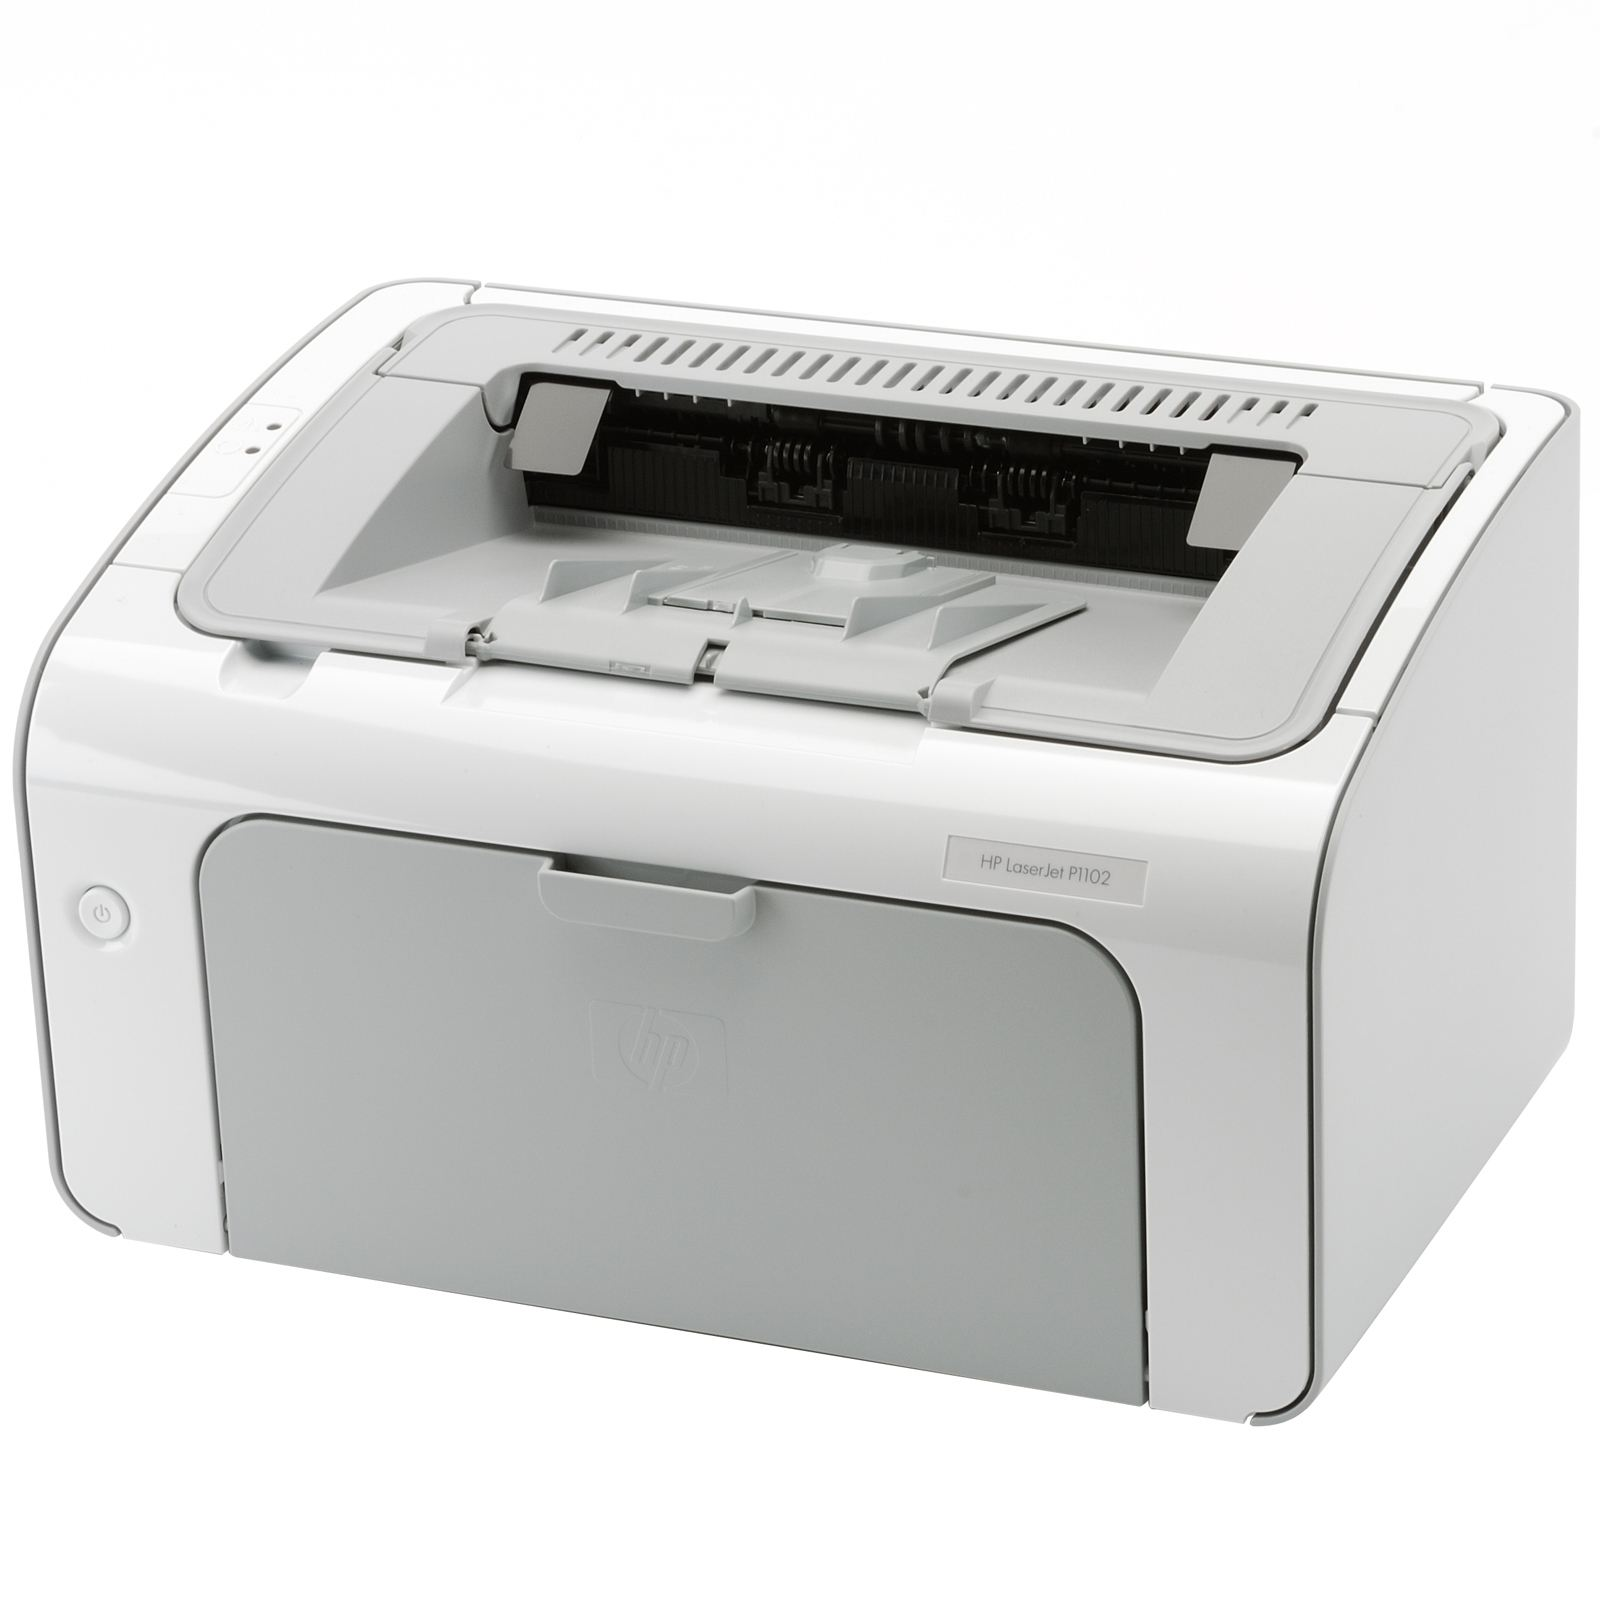 Hp laserjet pro p1102w printer driver downloads | hp® customer.